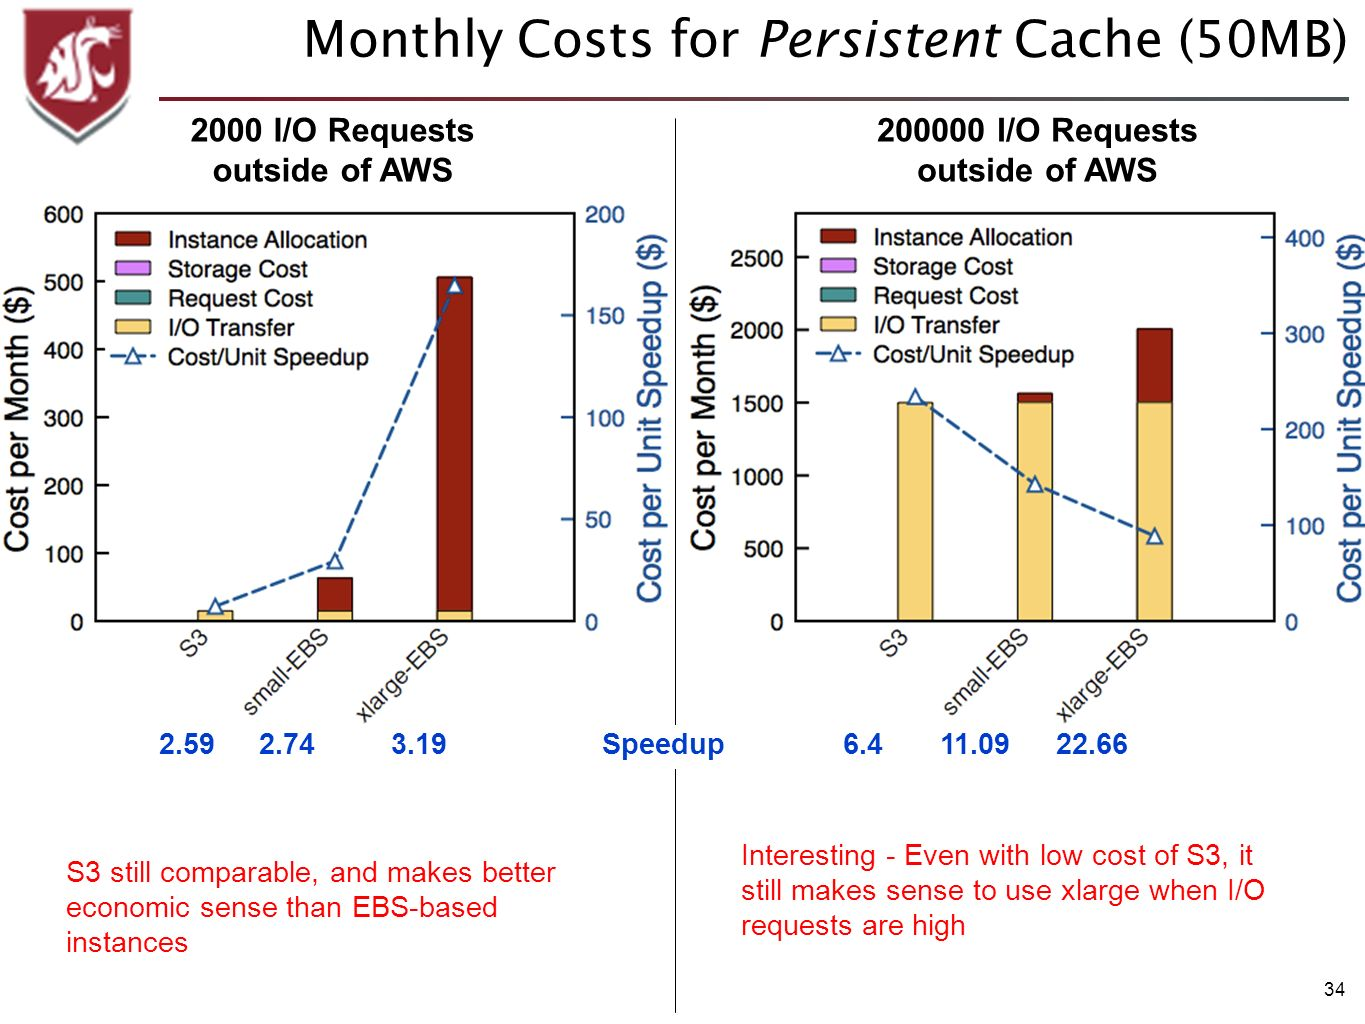 34 Monthly Costs for Persistent Cache (50MB) 200000 I/O Requests outside of AWS 2000 I/O Requests outside of AWS Interesting - Even with low cost of S